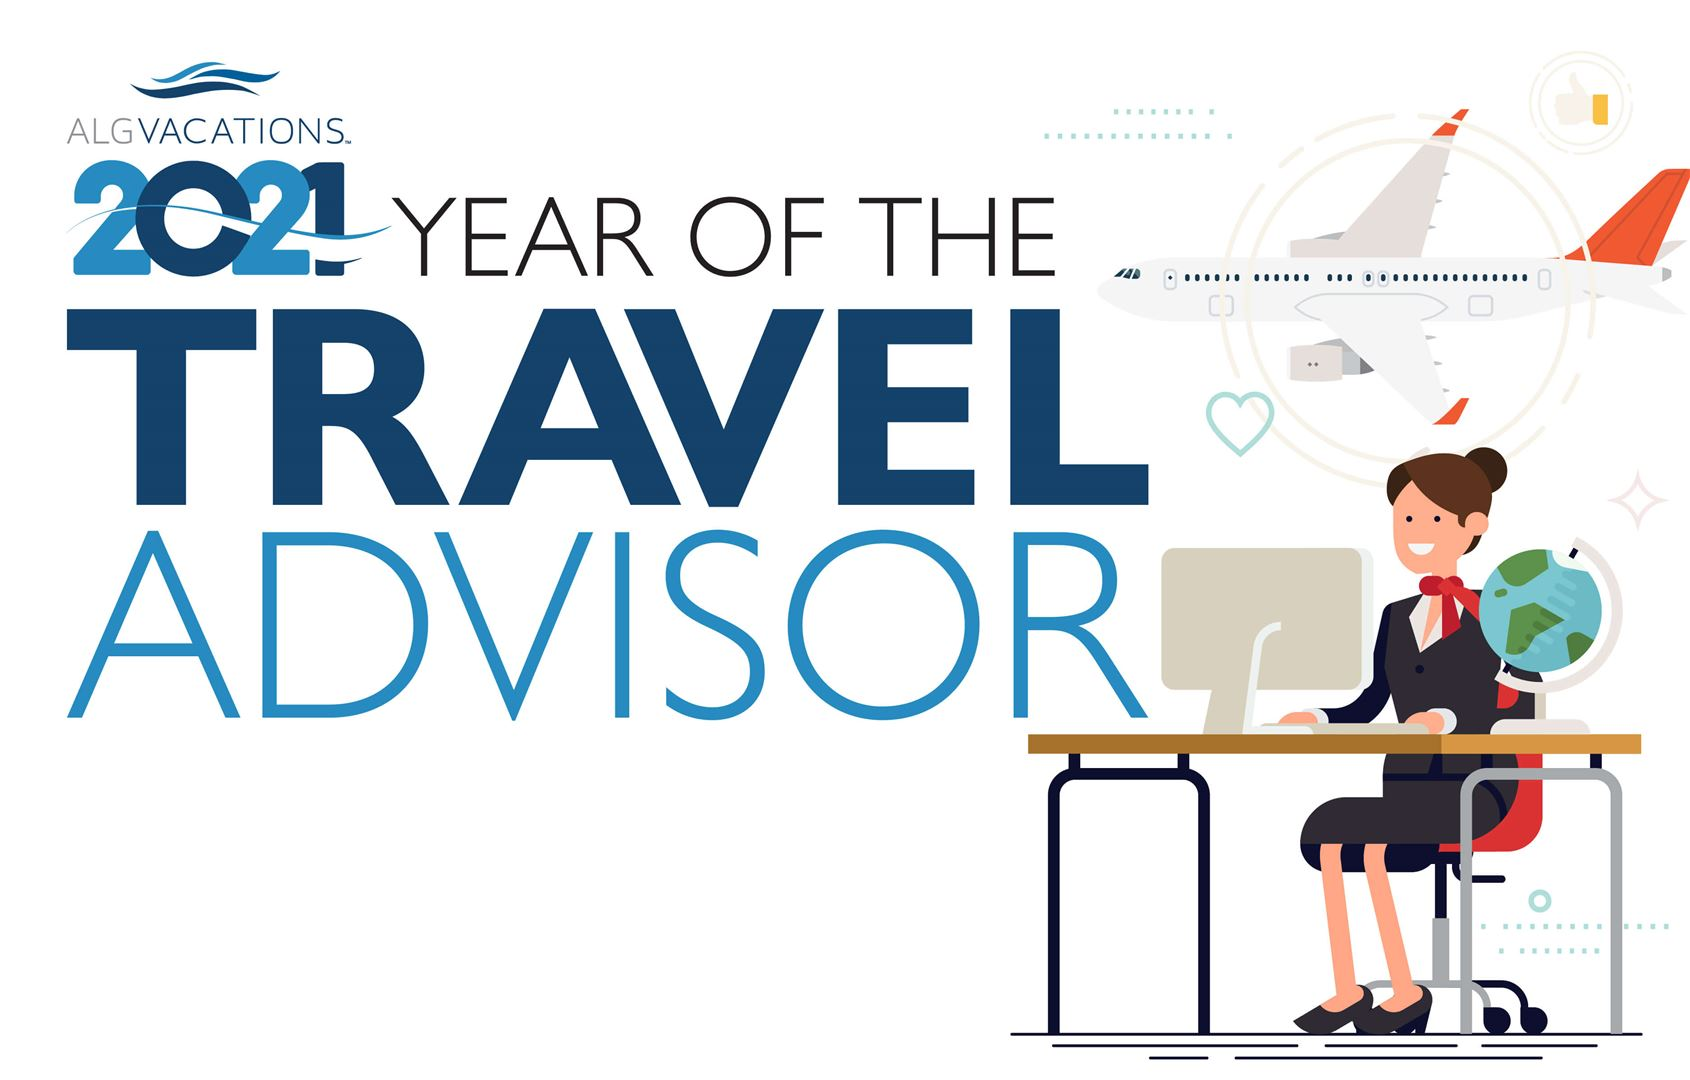 Apple Leisure Group Vacations Proclaims 2021 the 'Year of the Travel Advisor'